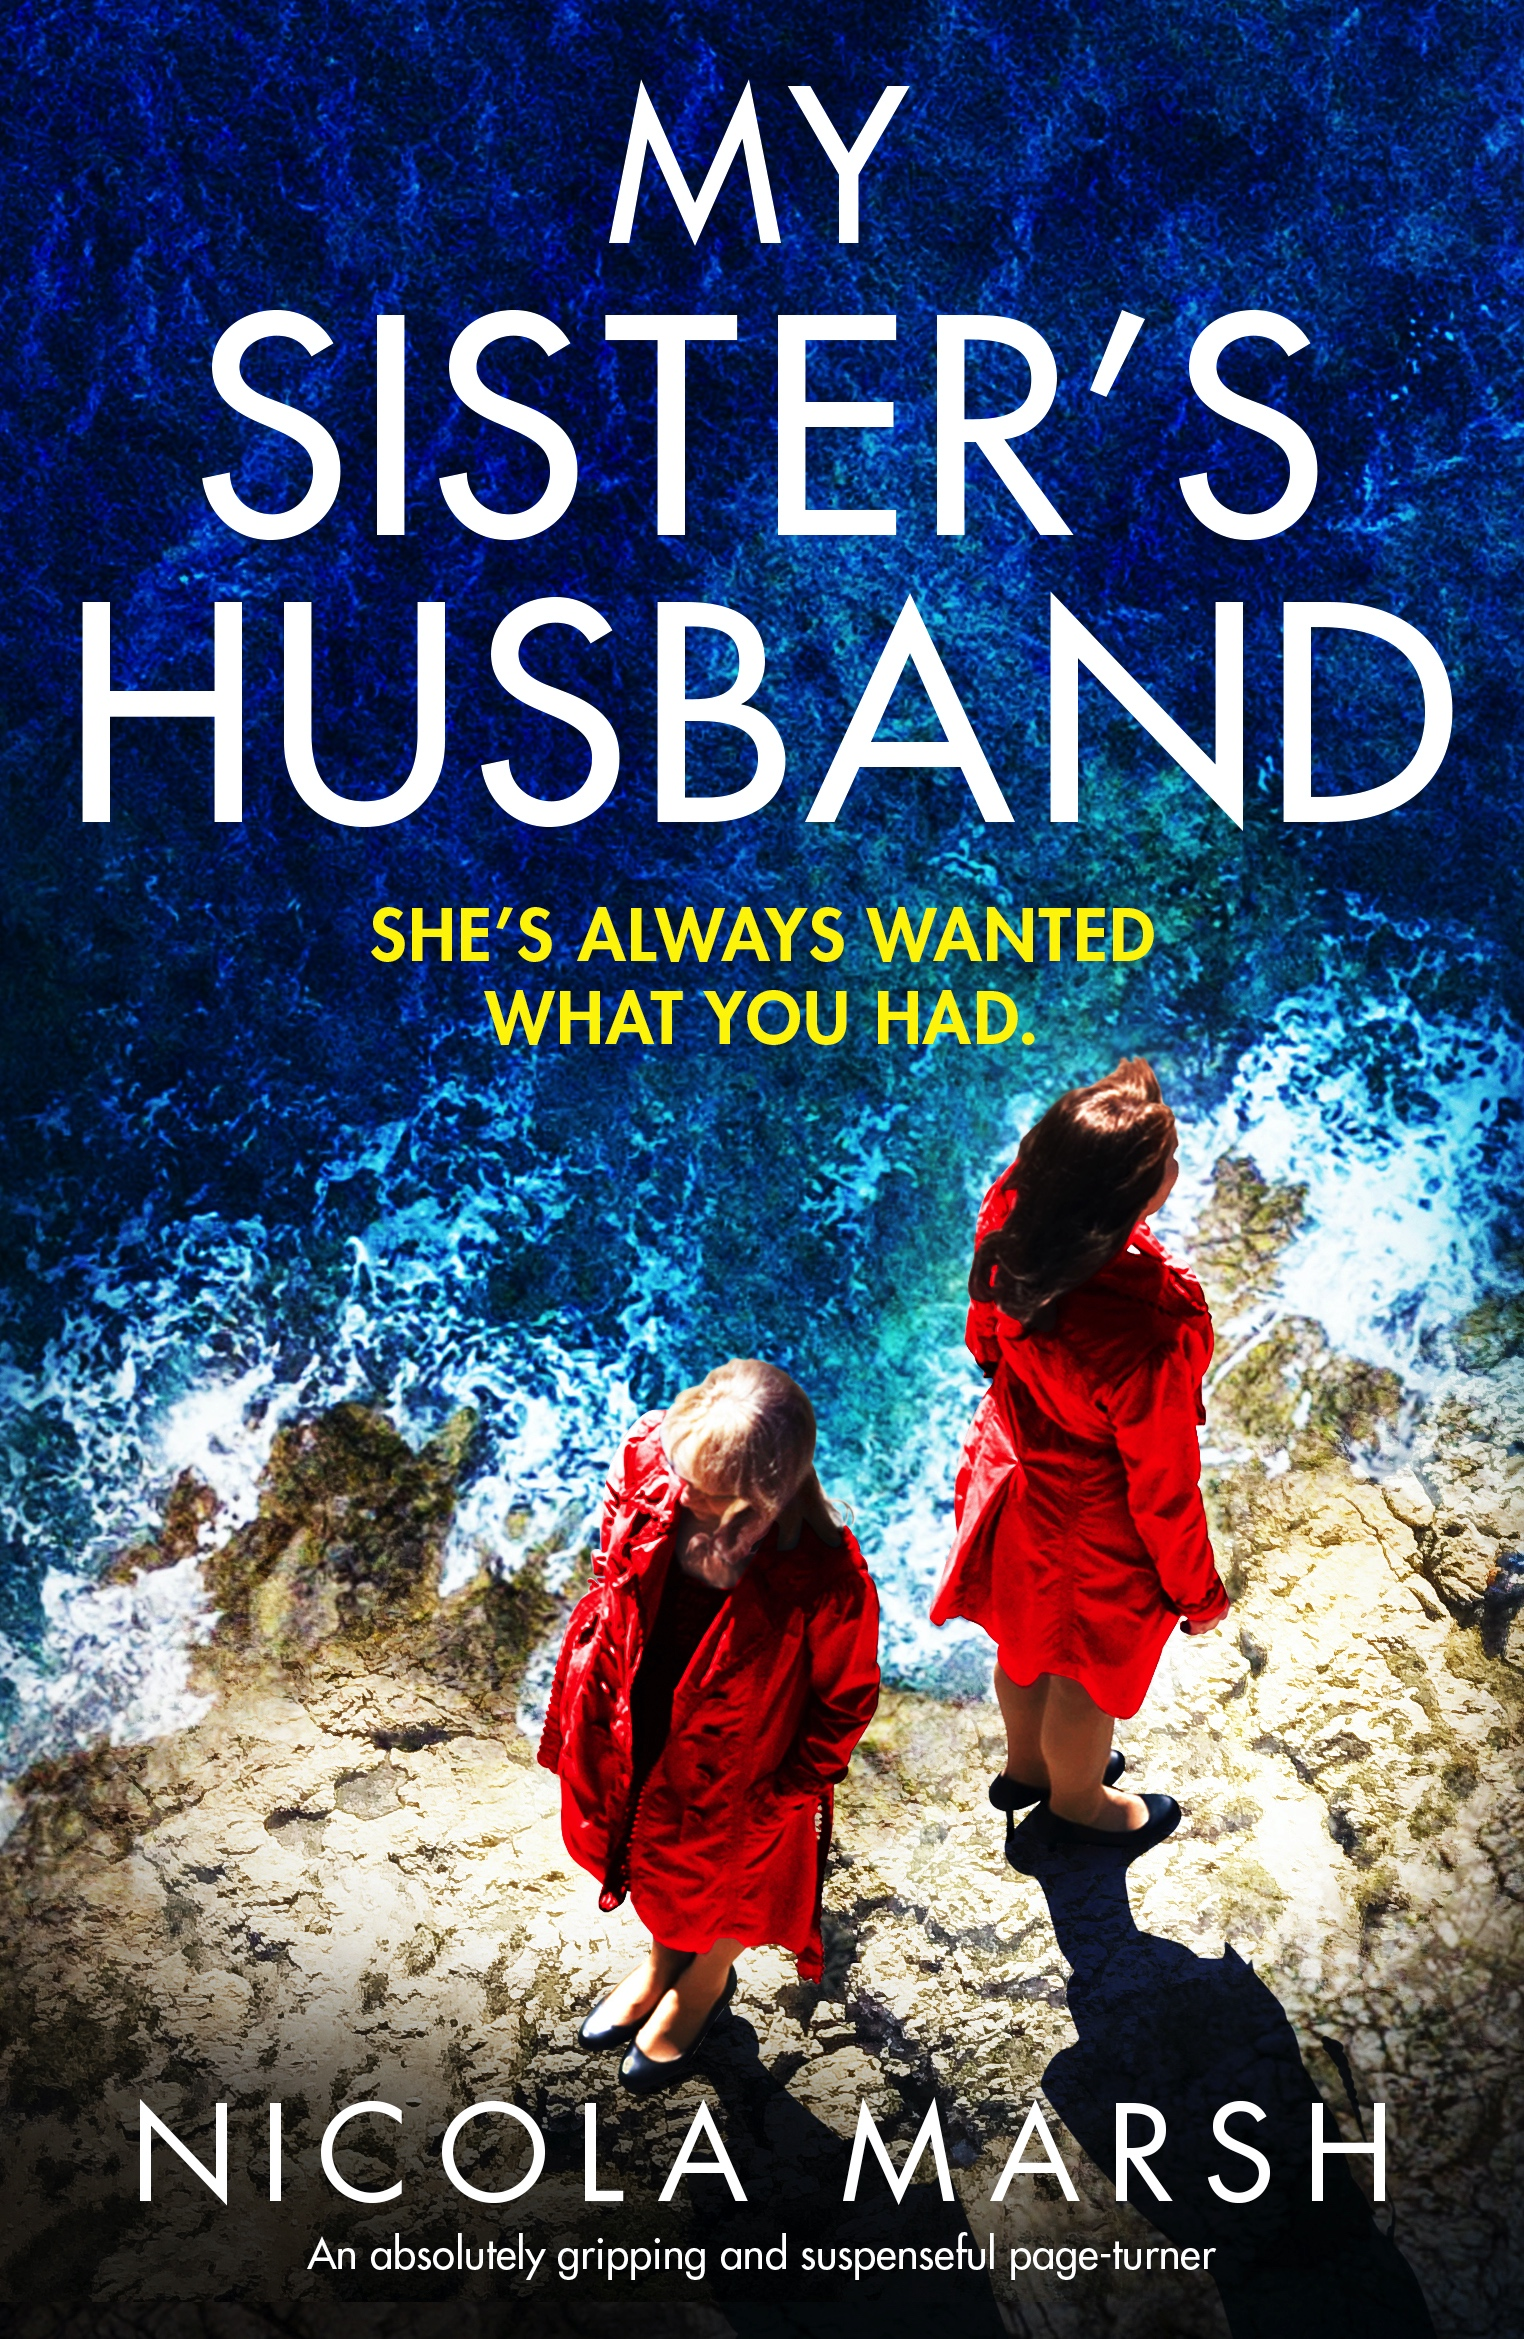 My Sister's Husband book cover